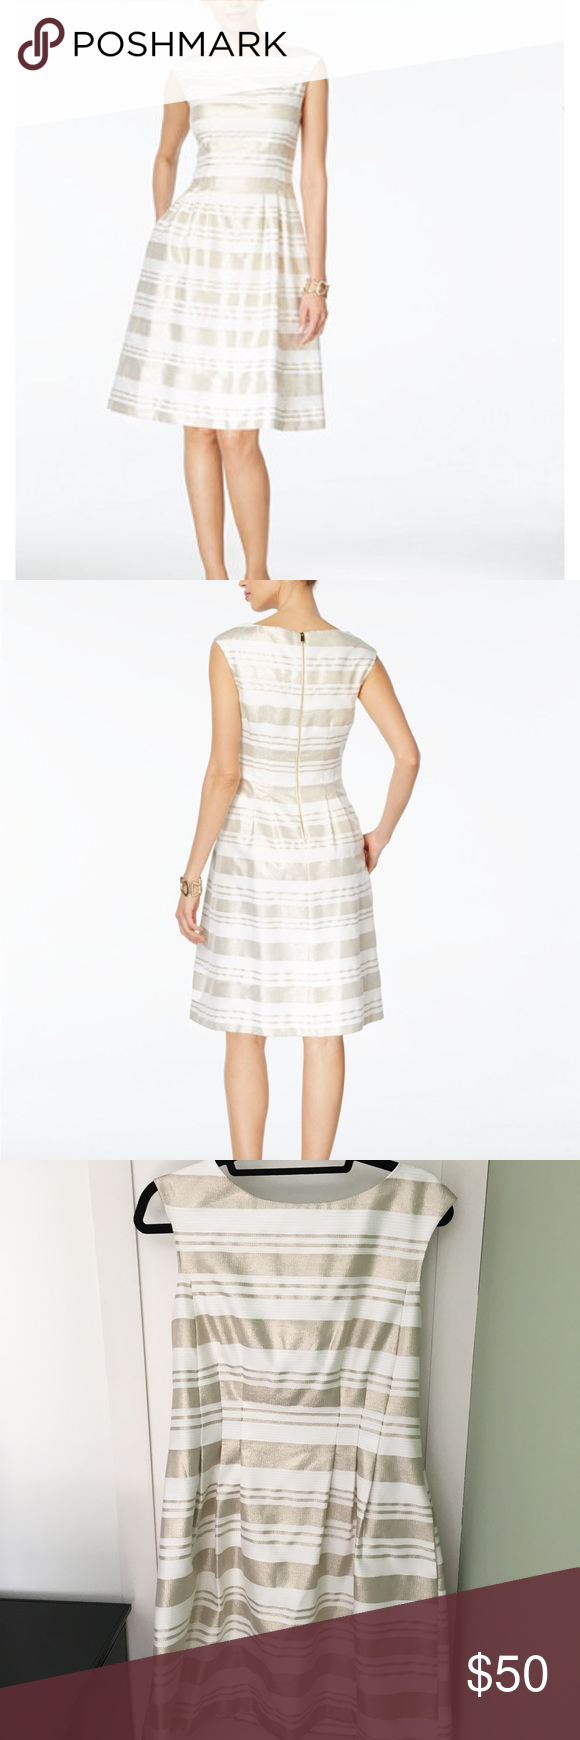 Vince Camuto Gold And White Strip Dress Stripped Dress Dresses Fashion [ 1740 x 580 Pixel ]